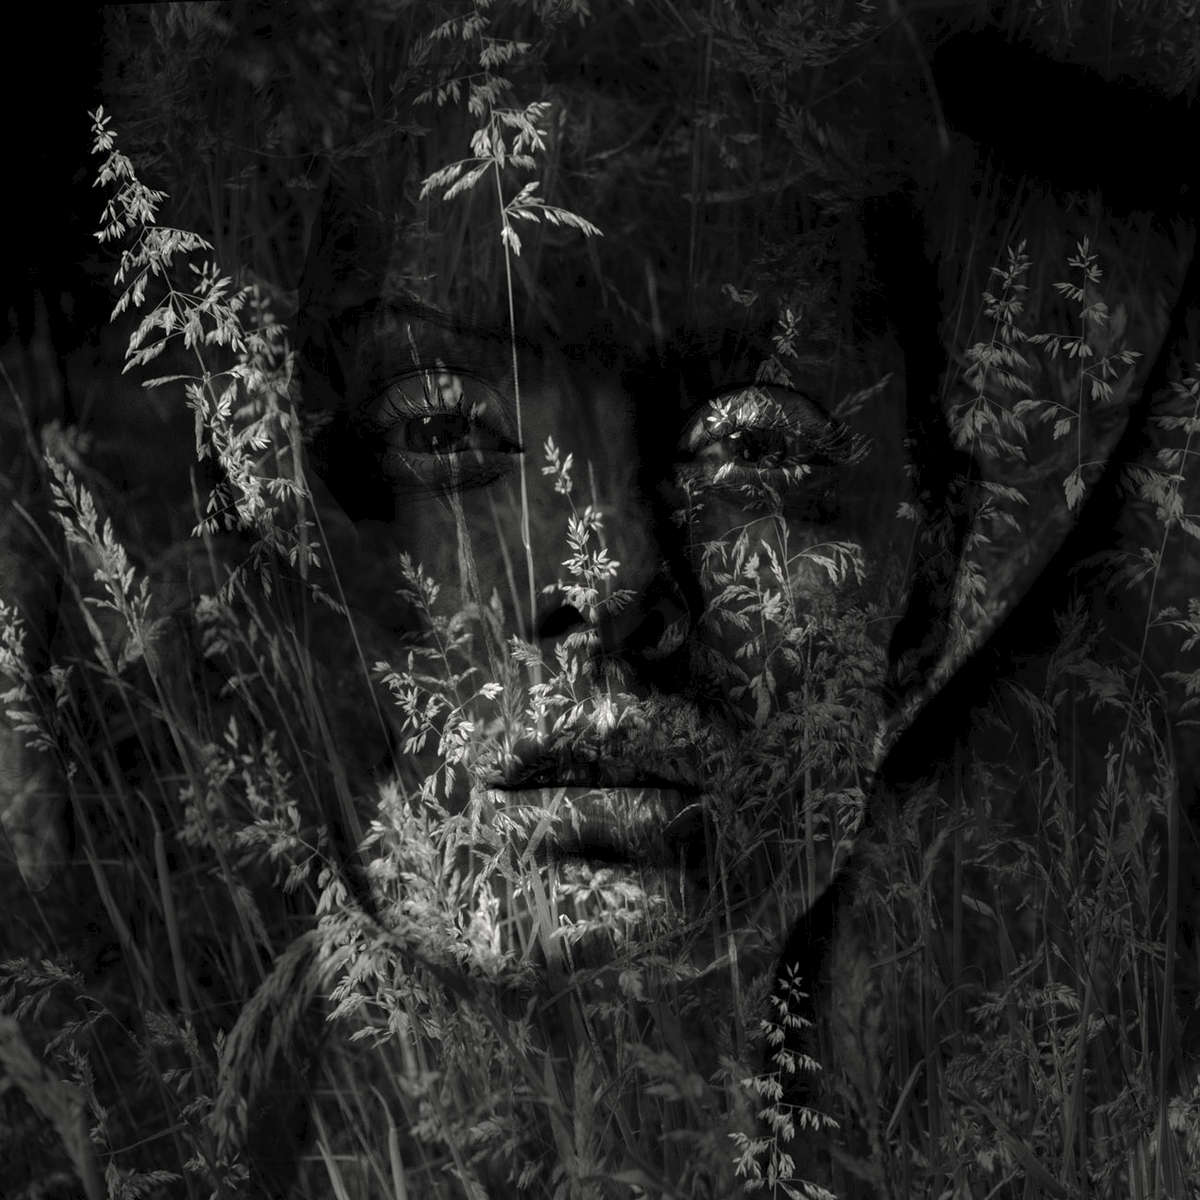 Double exposure nude portrait of a young woman with grasses